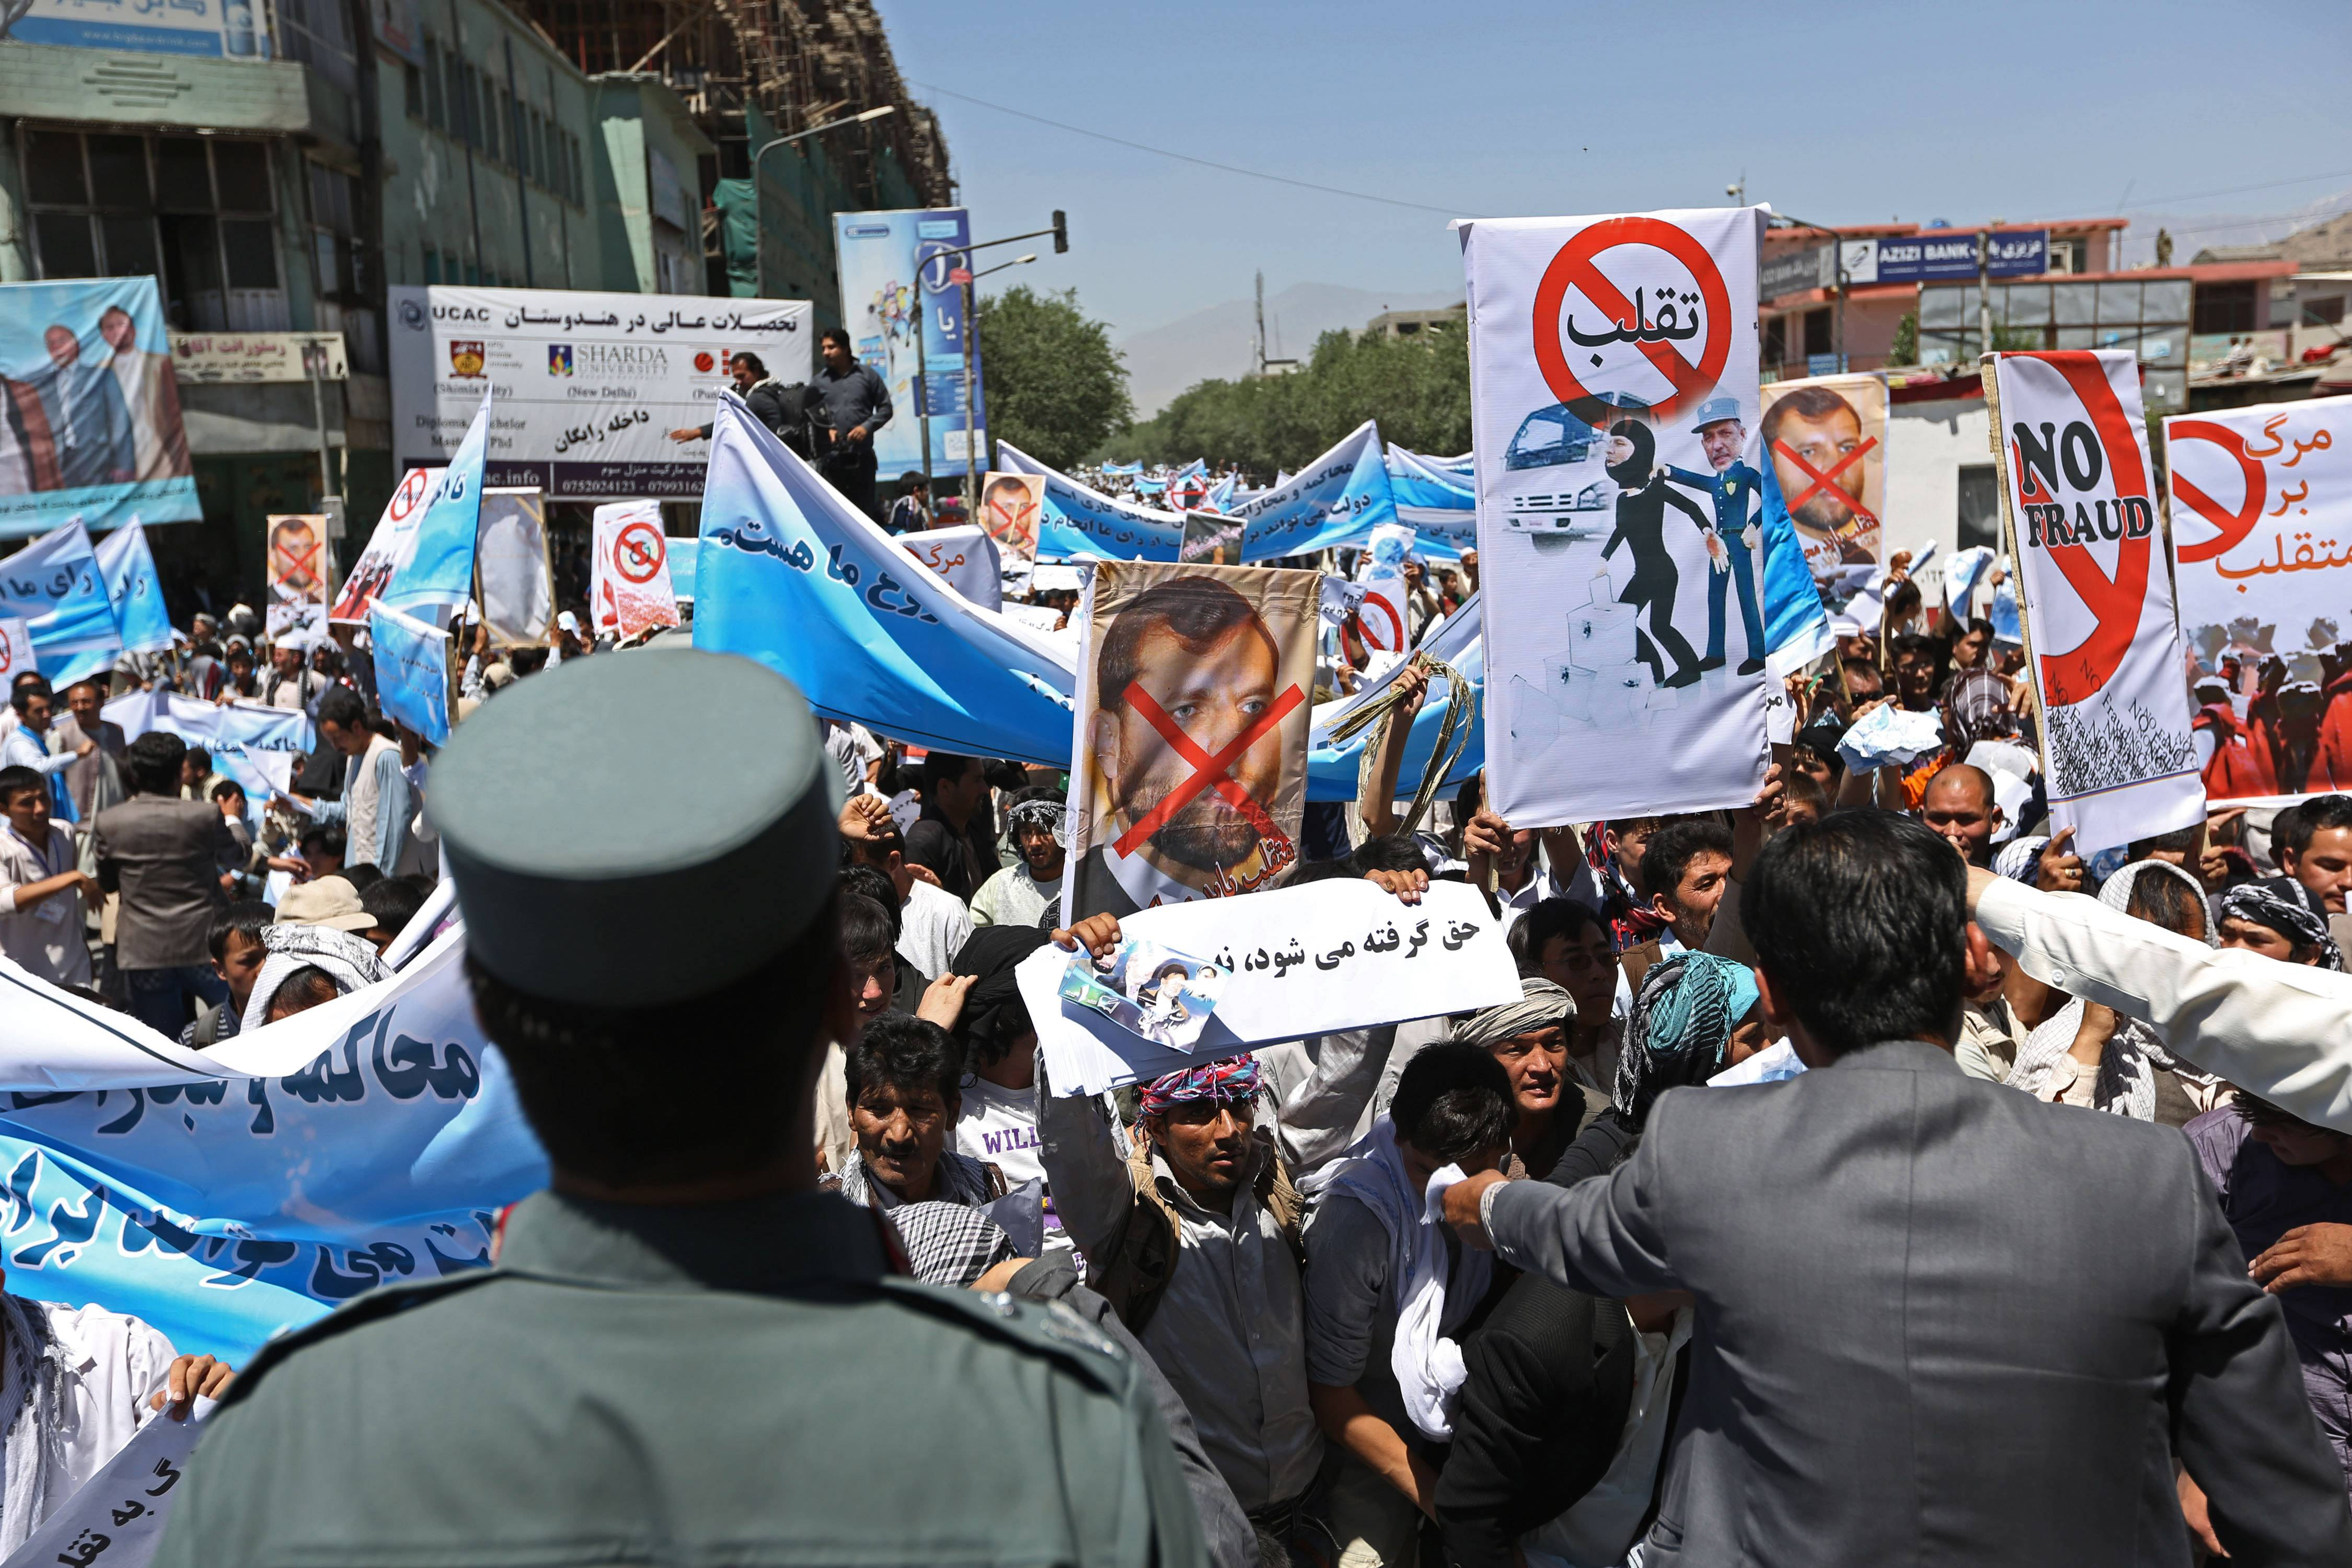 Supporters of presidential candidate Abdullah Abdullah shouts slogans during a protest in Kabul, Afghanistan, Saturday, June 21. Former Foreign Minister Abdullah, who is running against Ashraf Ghani Ahmadzai, a former finance minister, has accused electoral officials and others of trying to rig the June 14 vote against him.